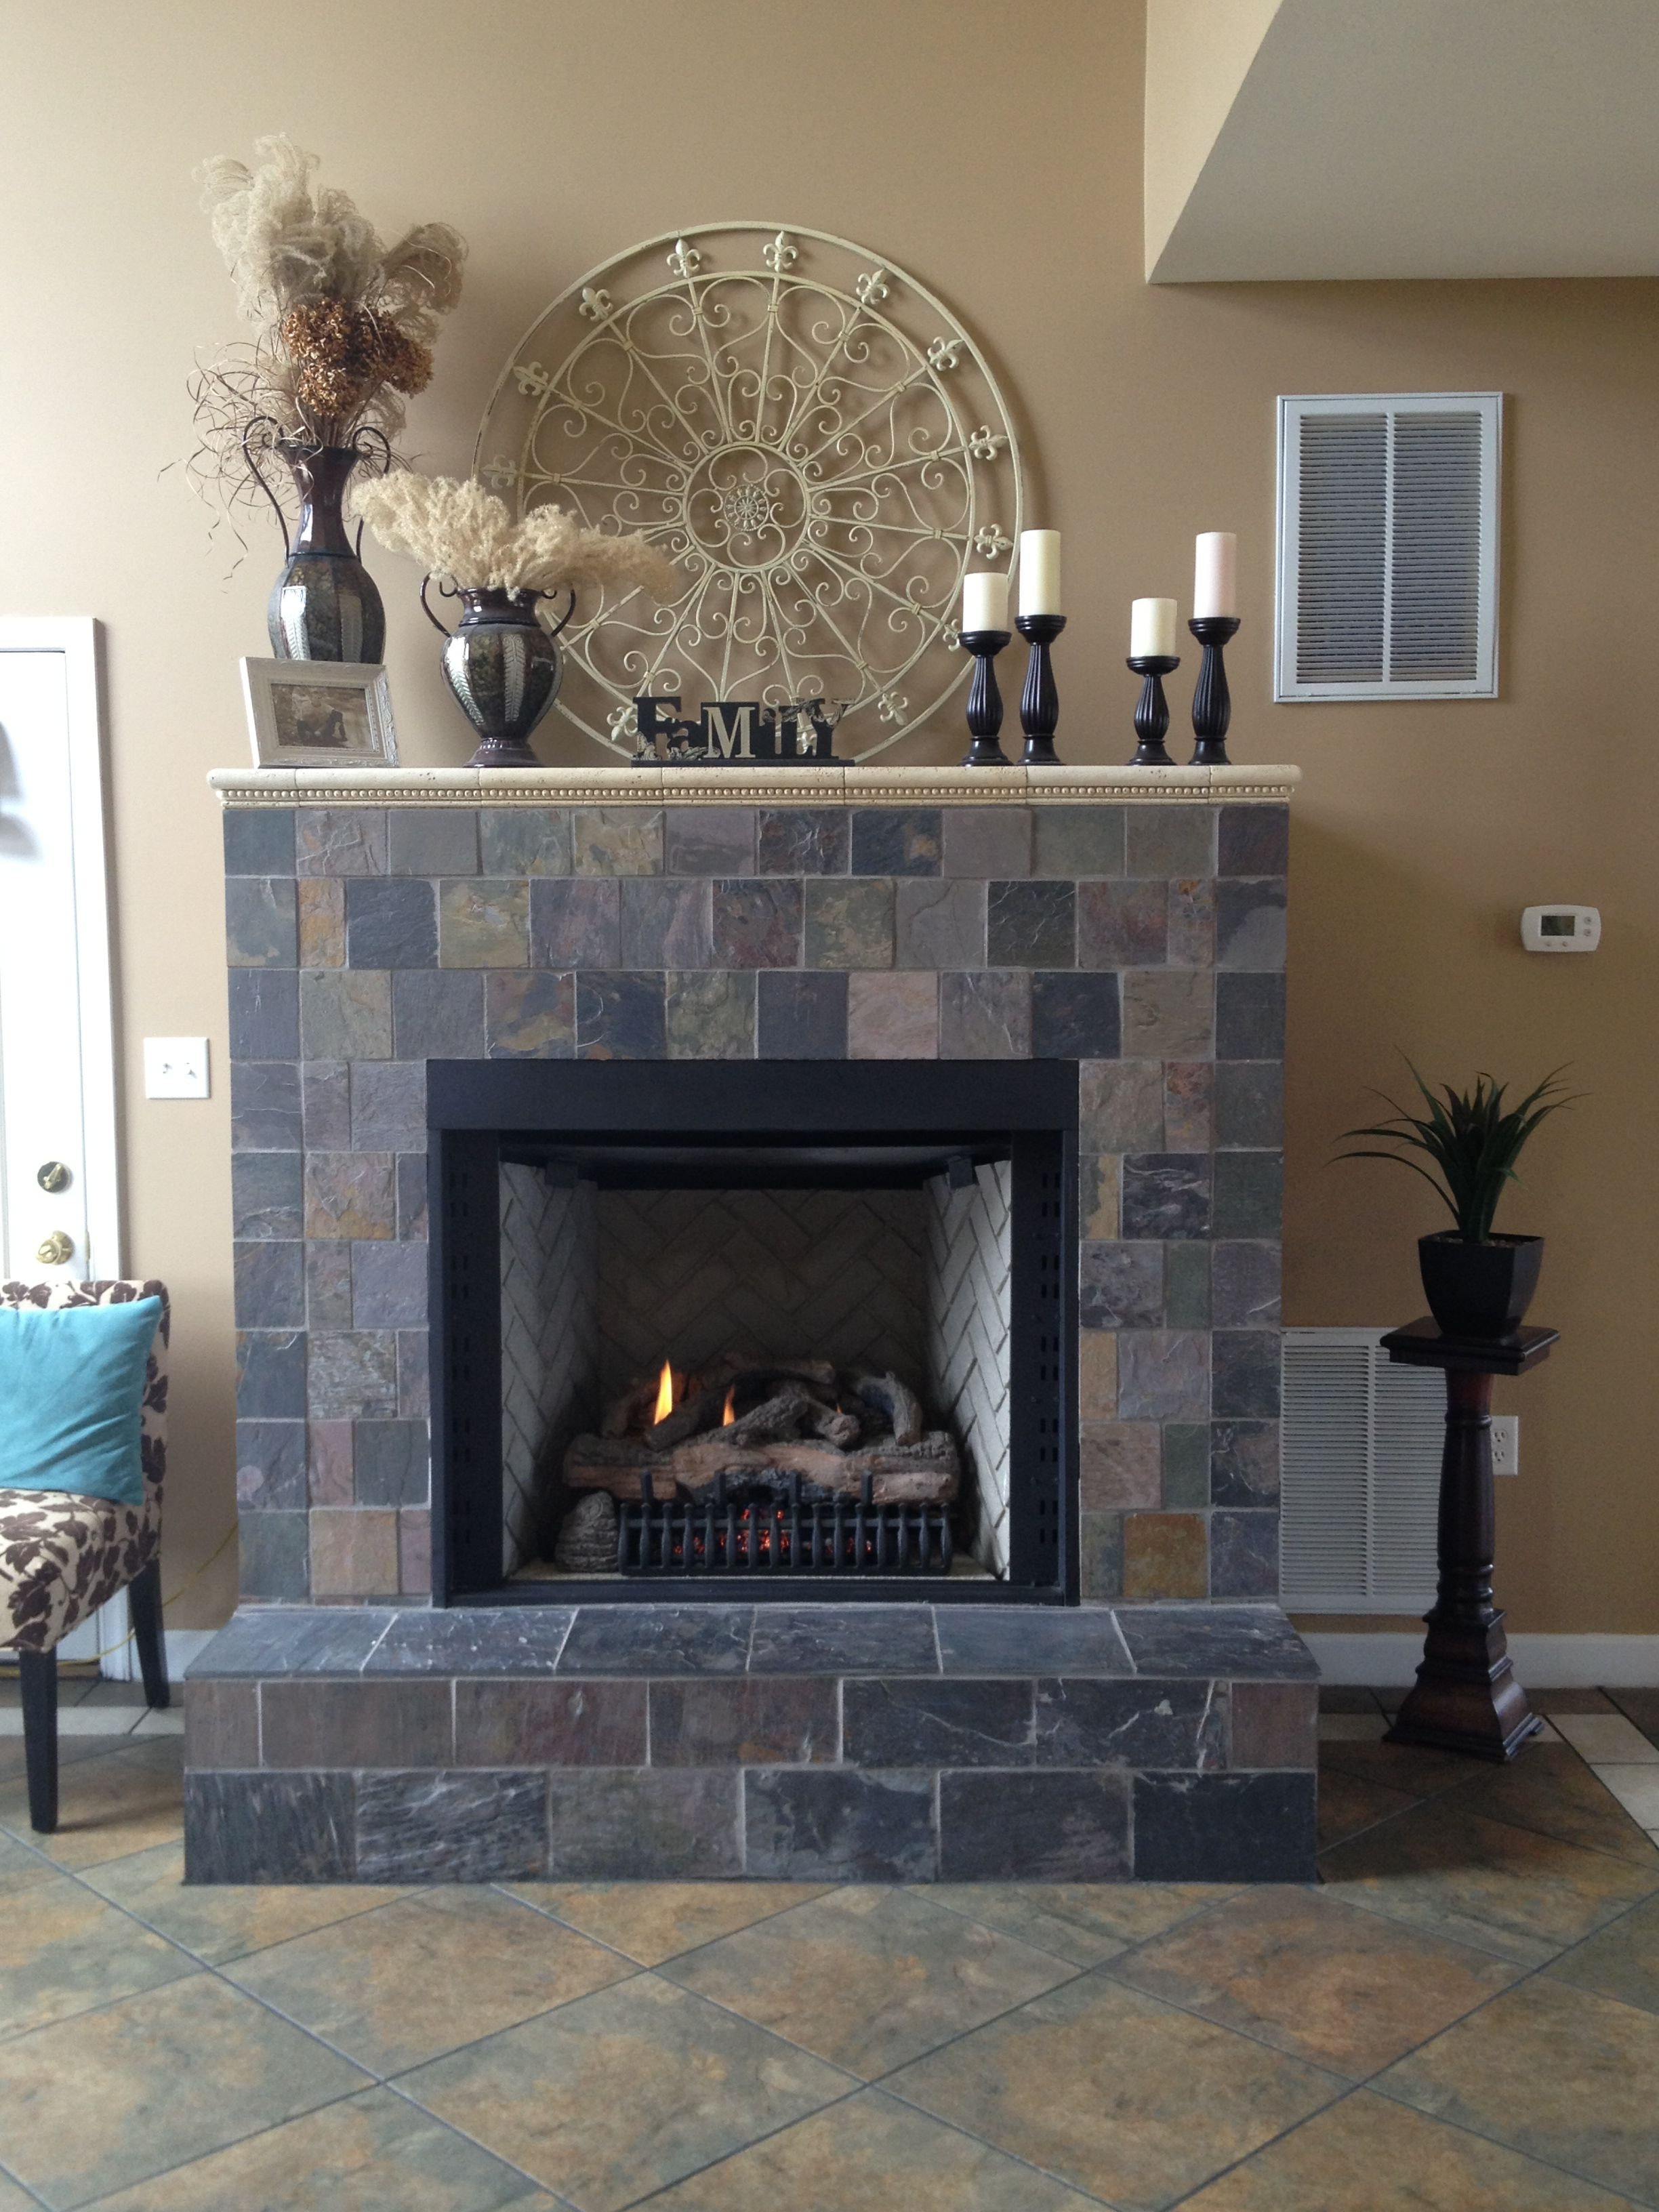 Phenomenal Slate Fireplace 1 Build Your Wooded Box Around The Firebox Interior Design Ideas Clesiryabchikinfo